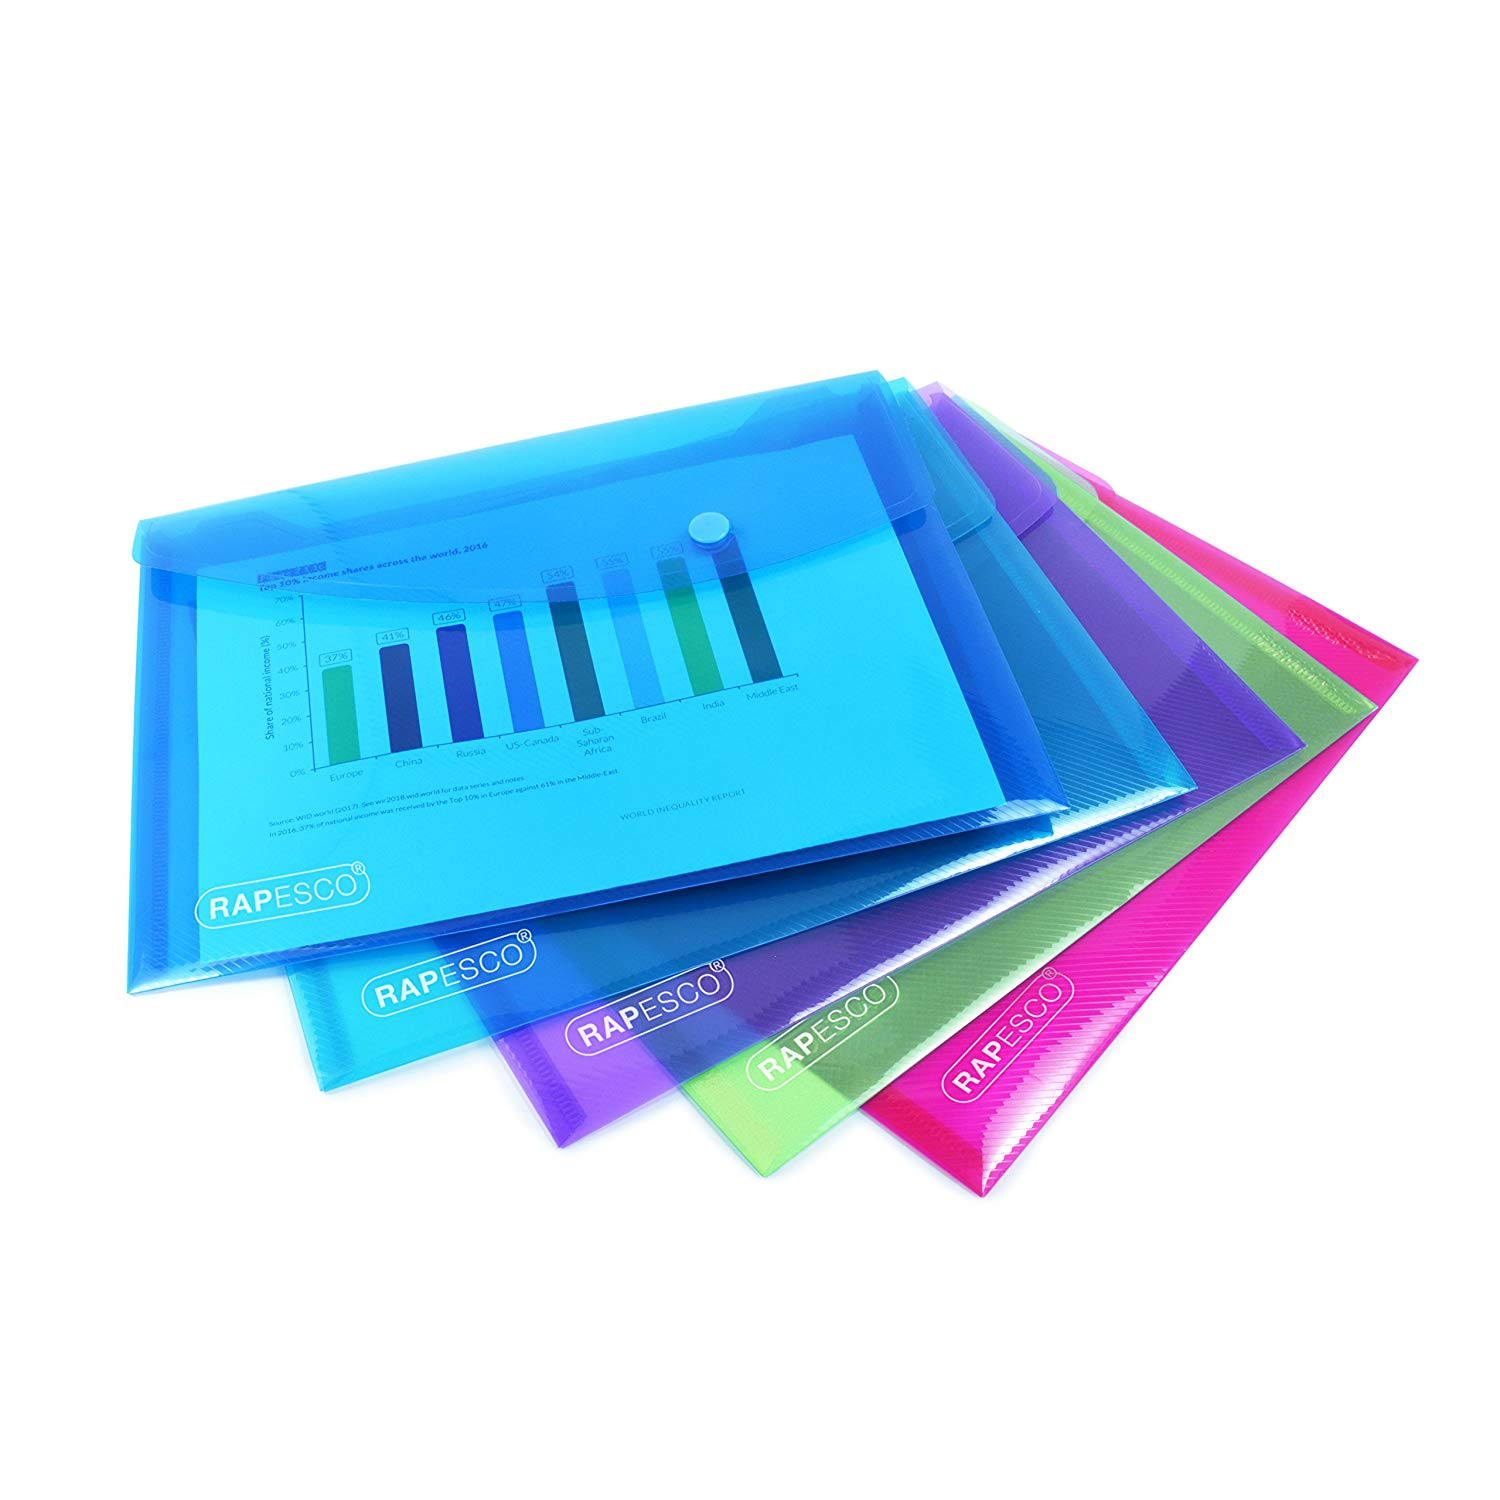 Rapesco A5 Plastic Popper Wallet, Pack of 5 @Amazon